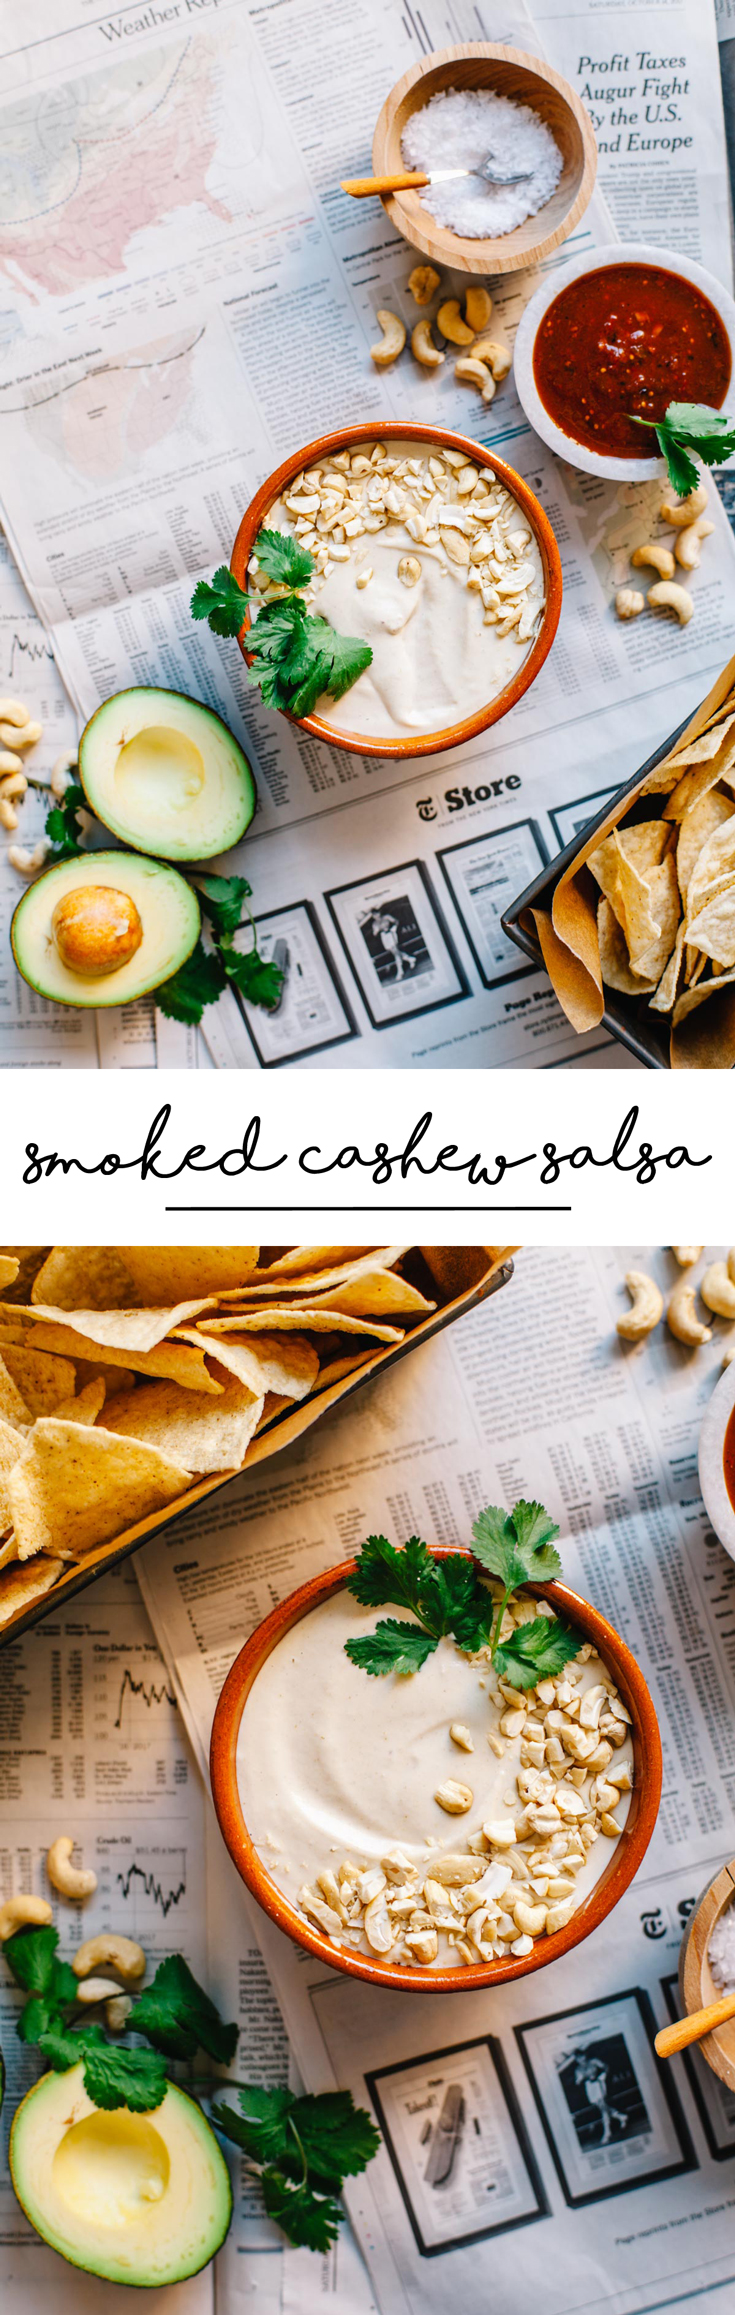 This Smoked Cashew Salsa is a unique, creamy dip for your chips. It's like a cross between queso and sour cream with a smokey flavor! #cashew #salsa | Brewing Happiness